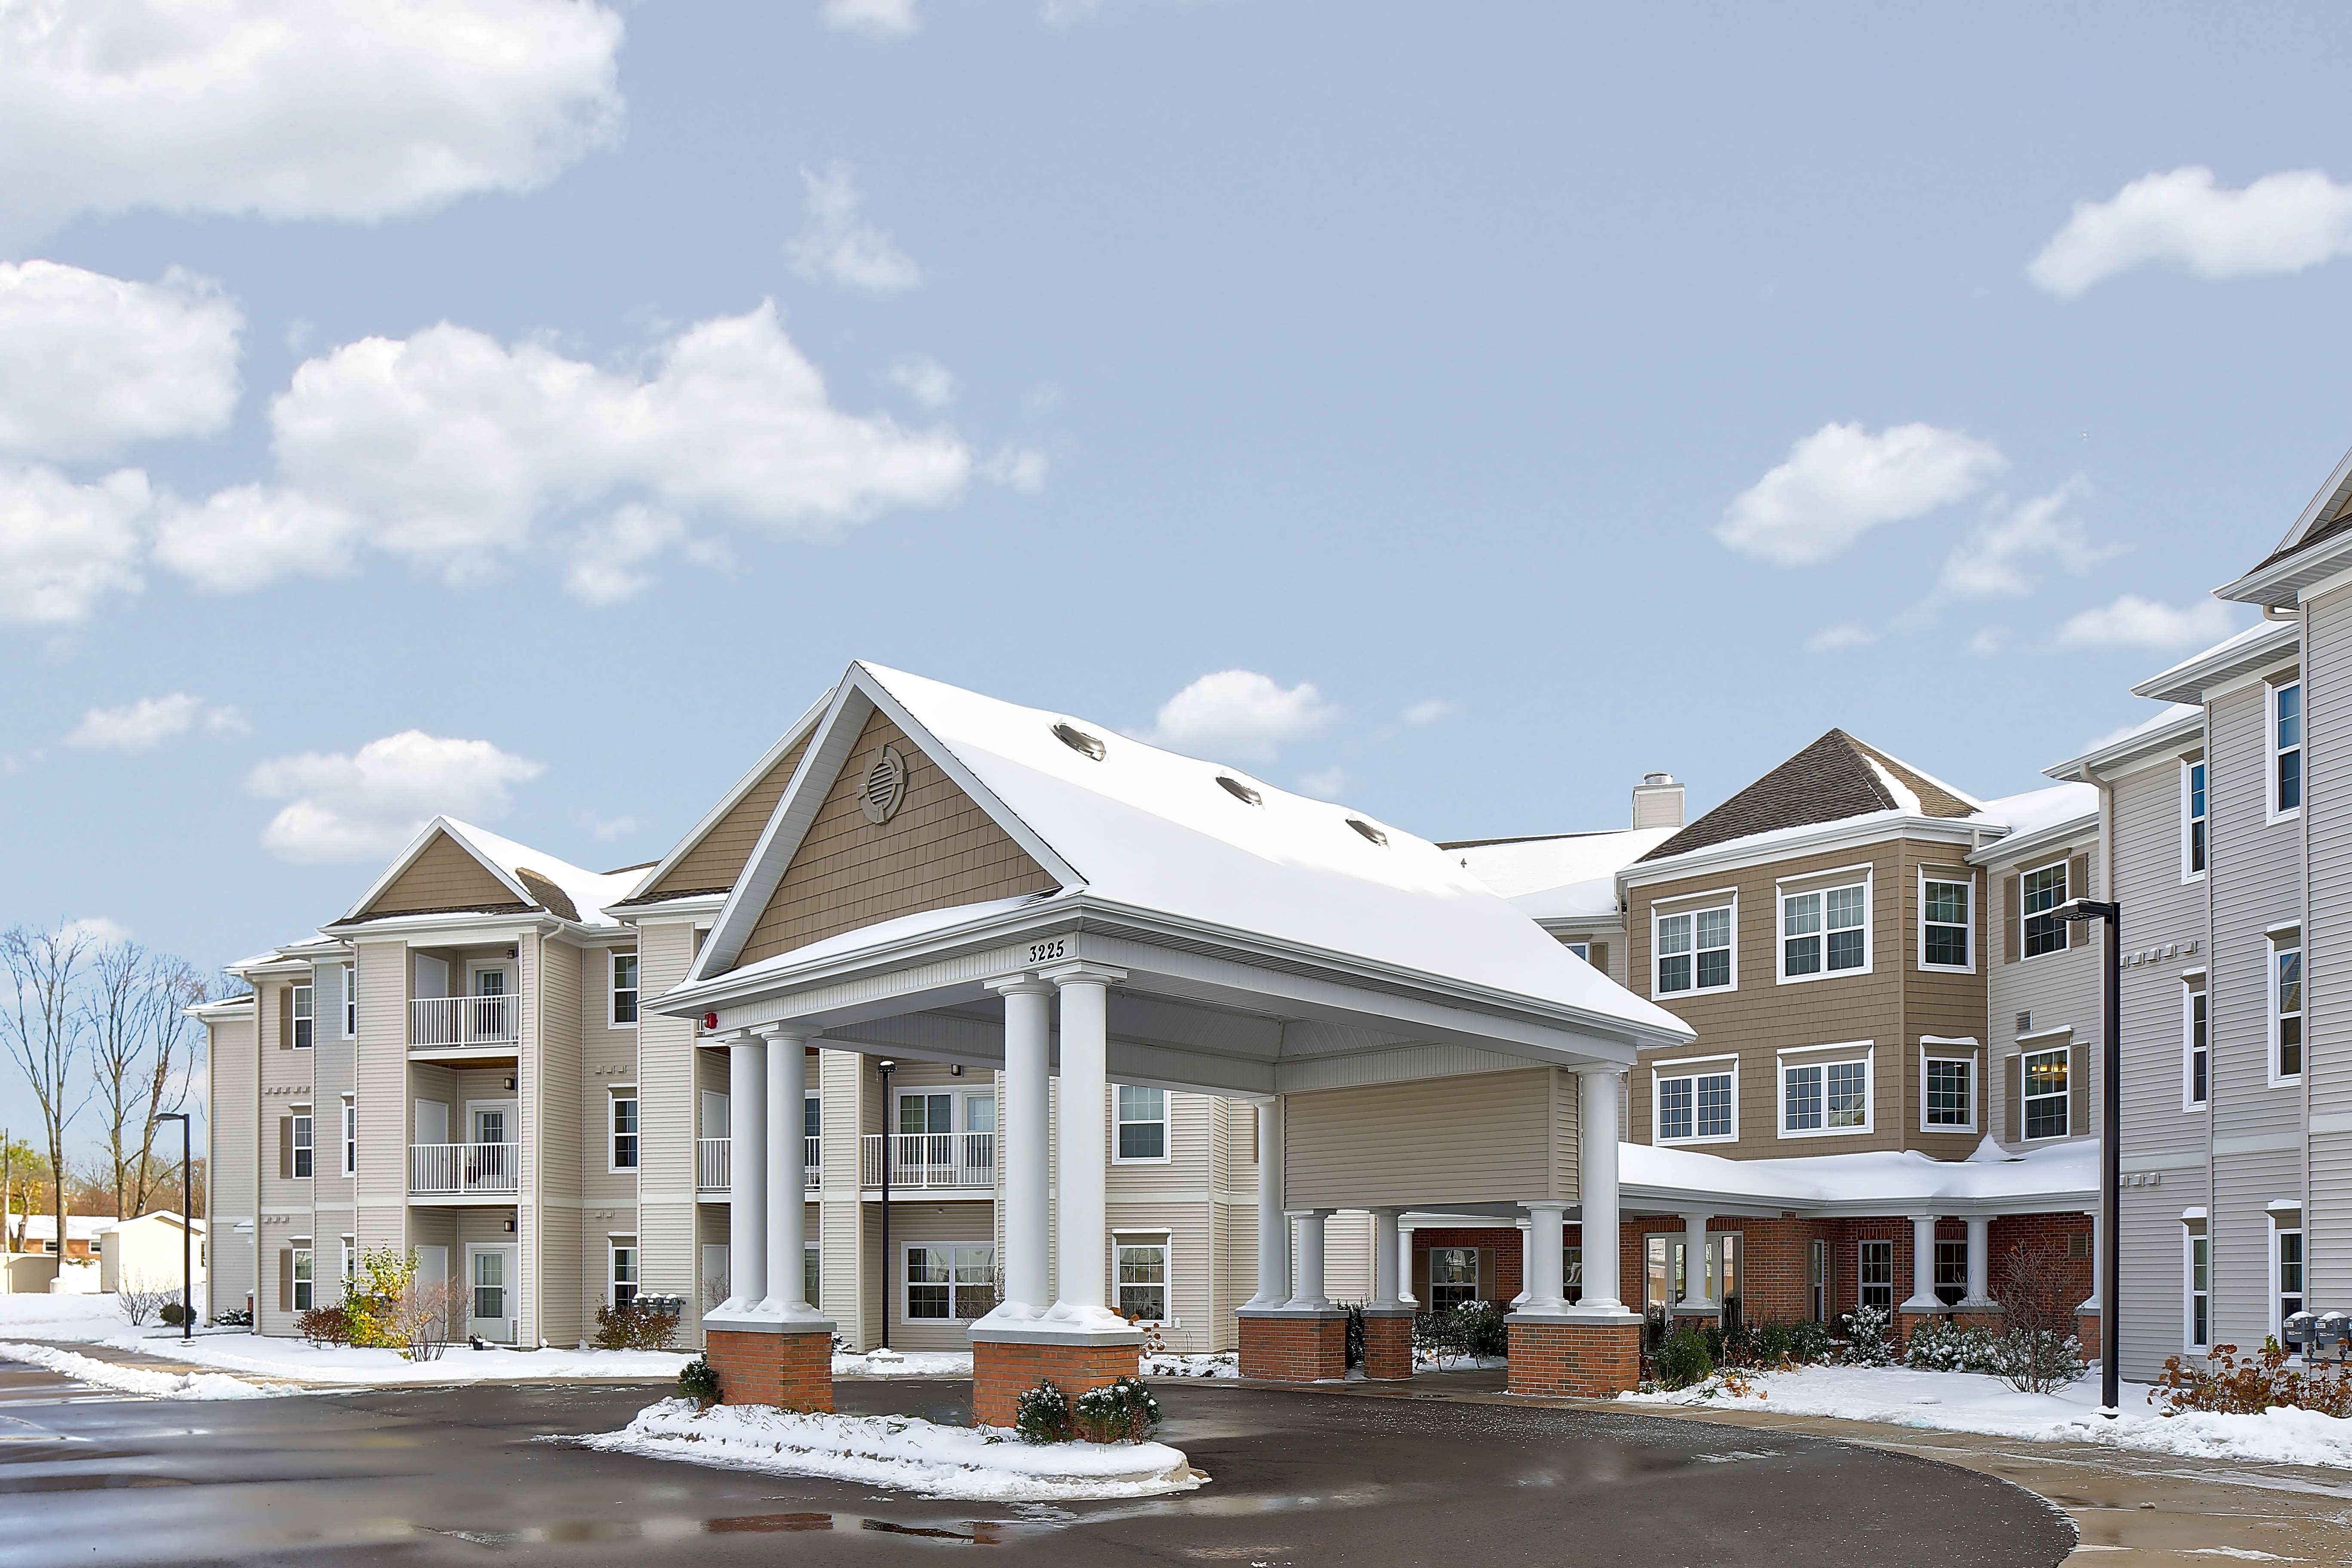 Apartments Near MSU Grandhaven Manor for Michigan State University Students in East Lansing, MI